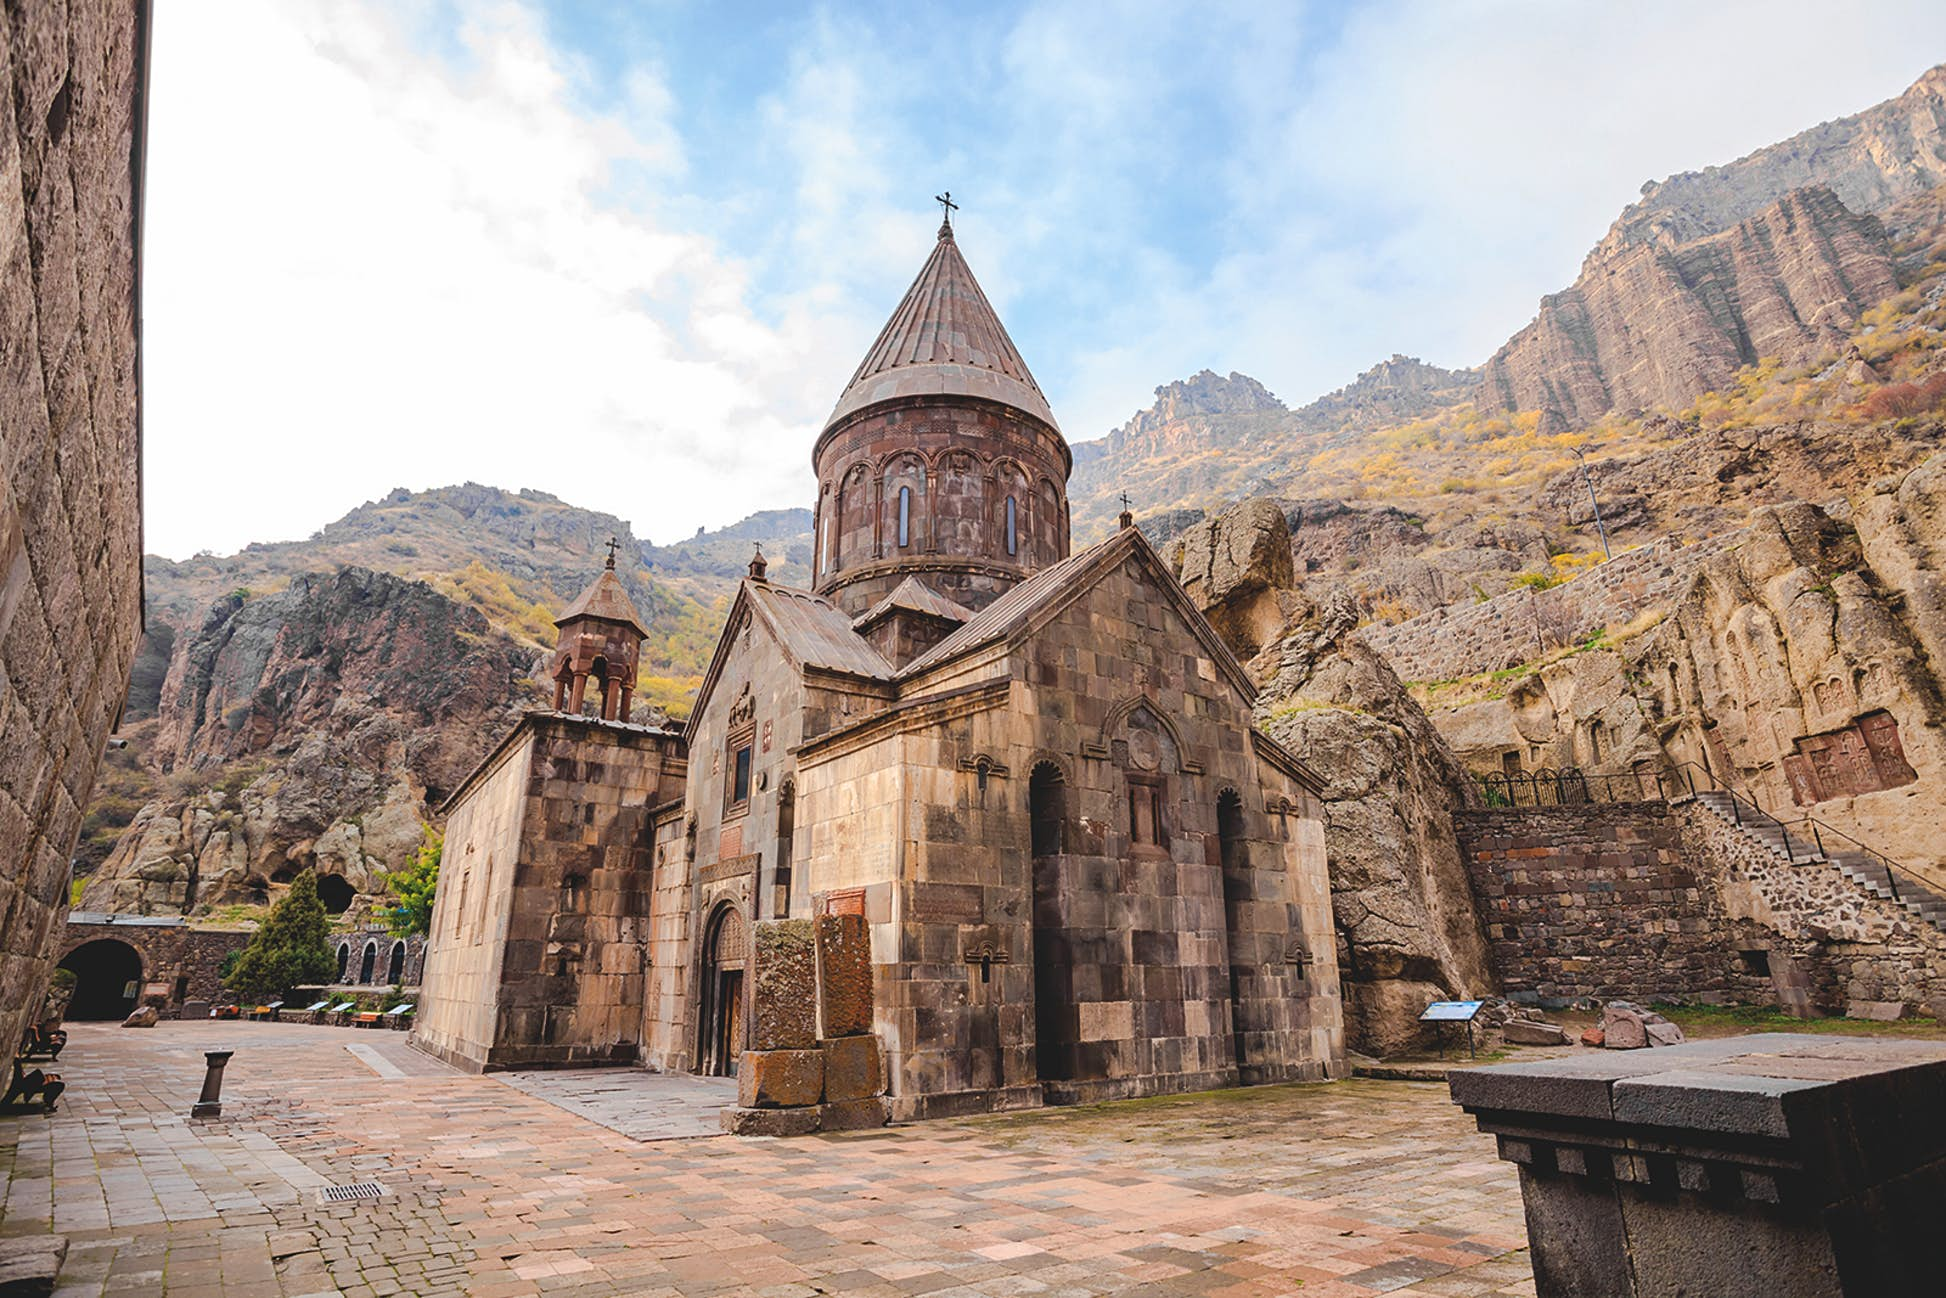 The Monastery of Geghard occupies an awesome spot at the foot of cliffs in Armenia © Takepicsforfun / Getty Images